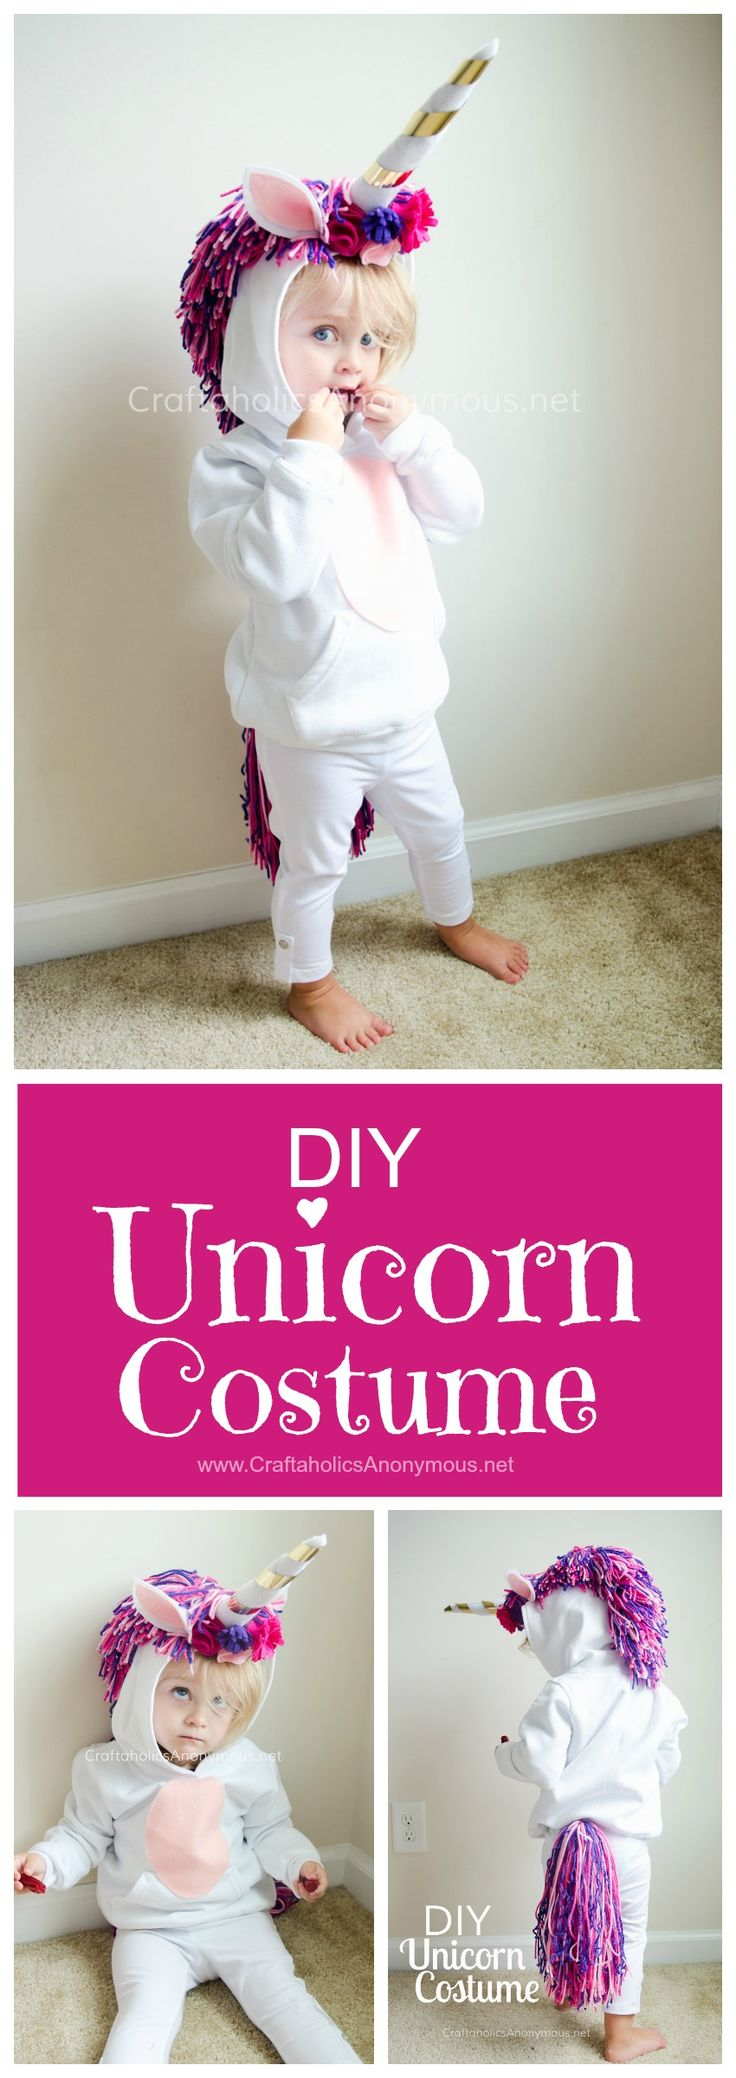 diy unicorn costume tutorial handmade halloween costumeshalloween costume ideashalloween craftshalloween kidsdiy - Little Girls Halloween Costume Ideas